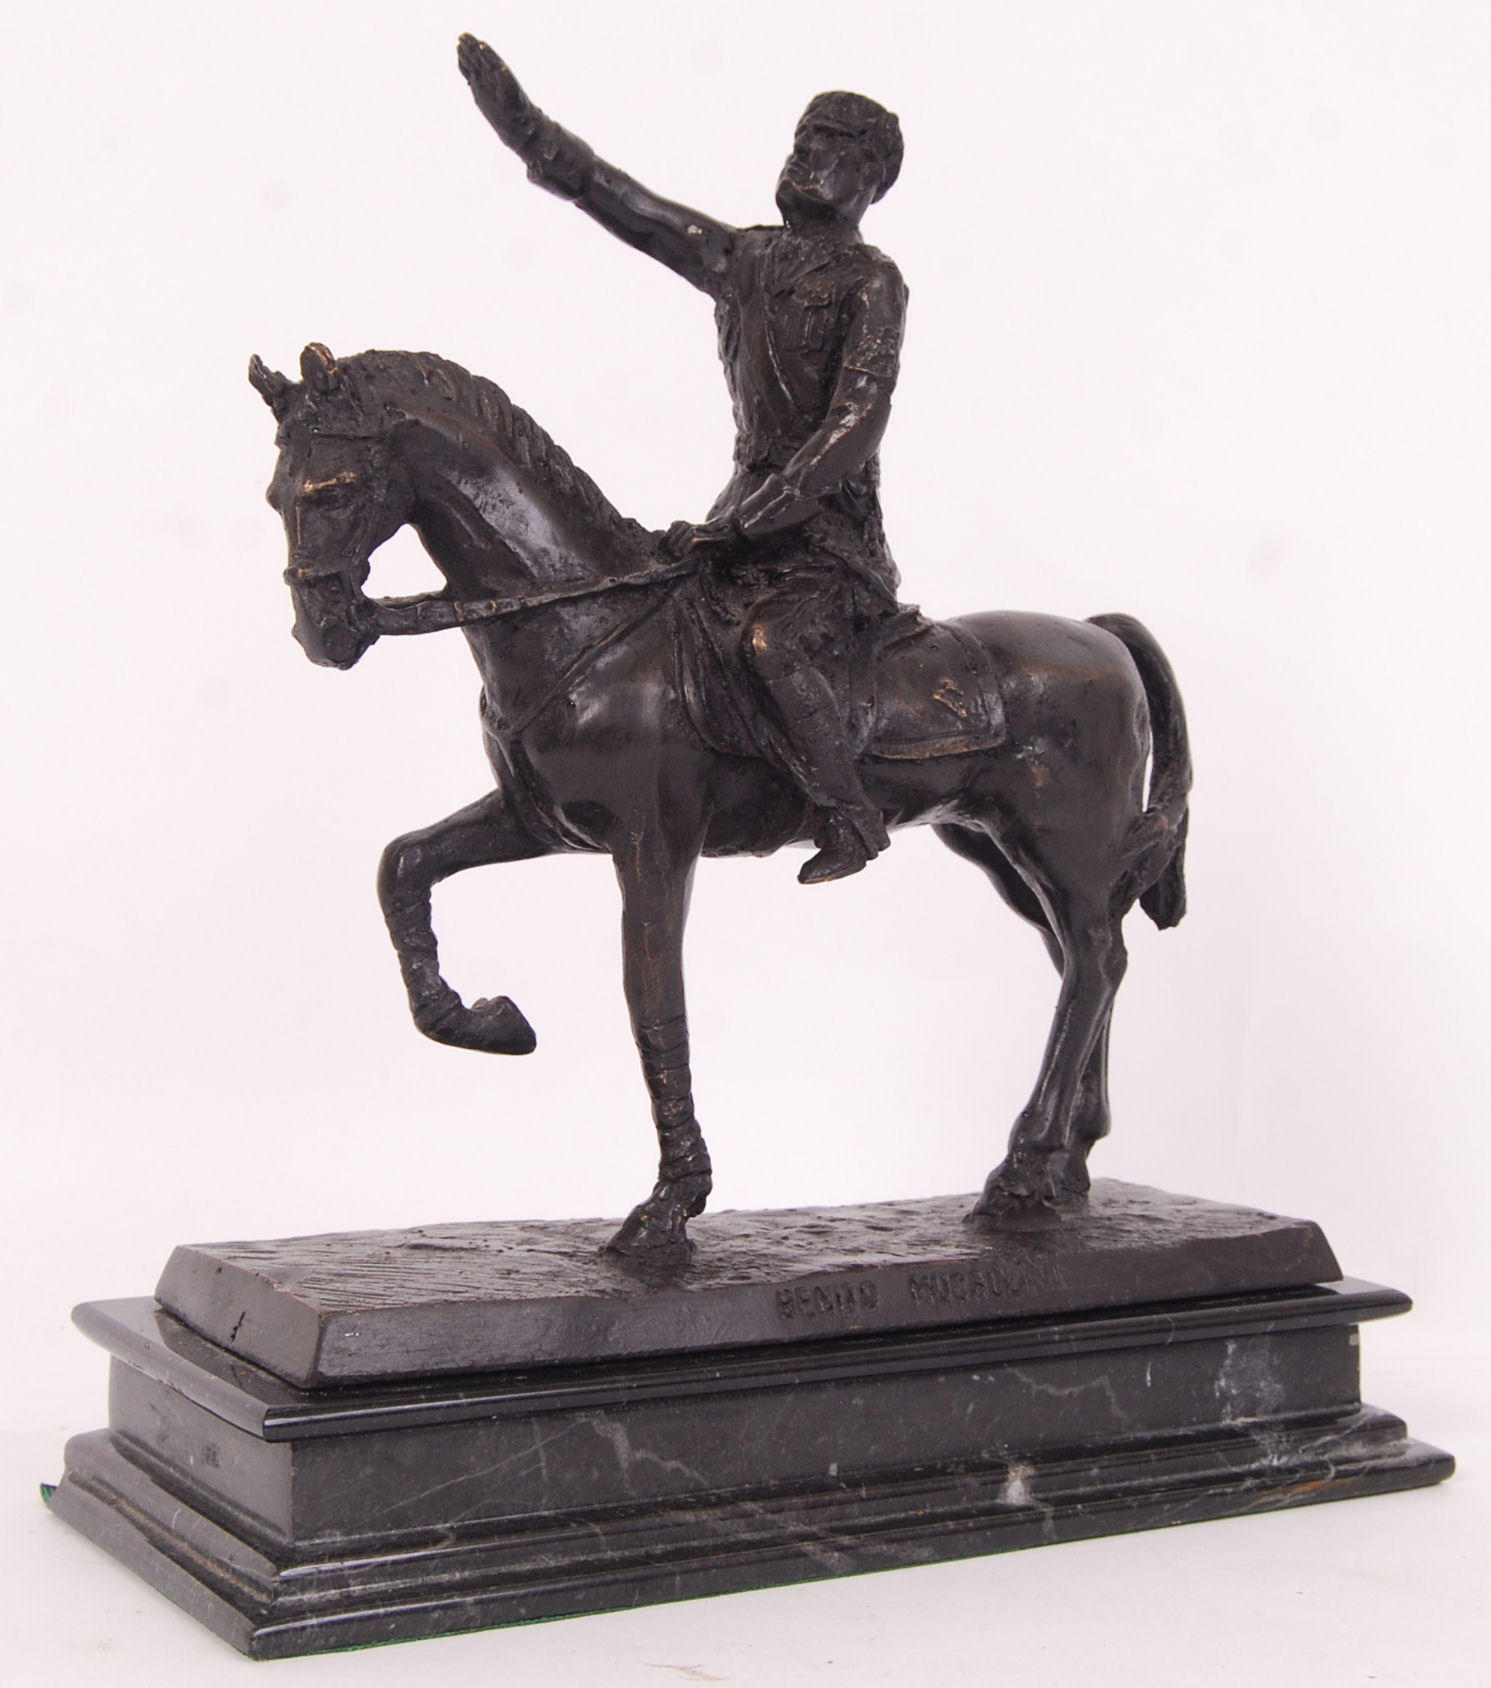 Lot 11 - MUSSOLINI BRONZE STATUE